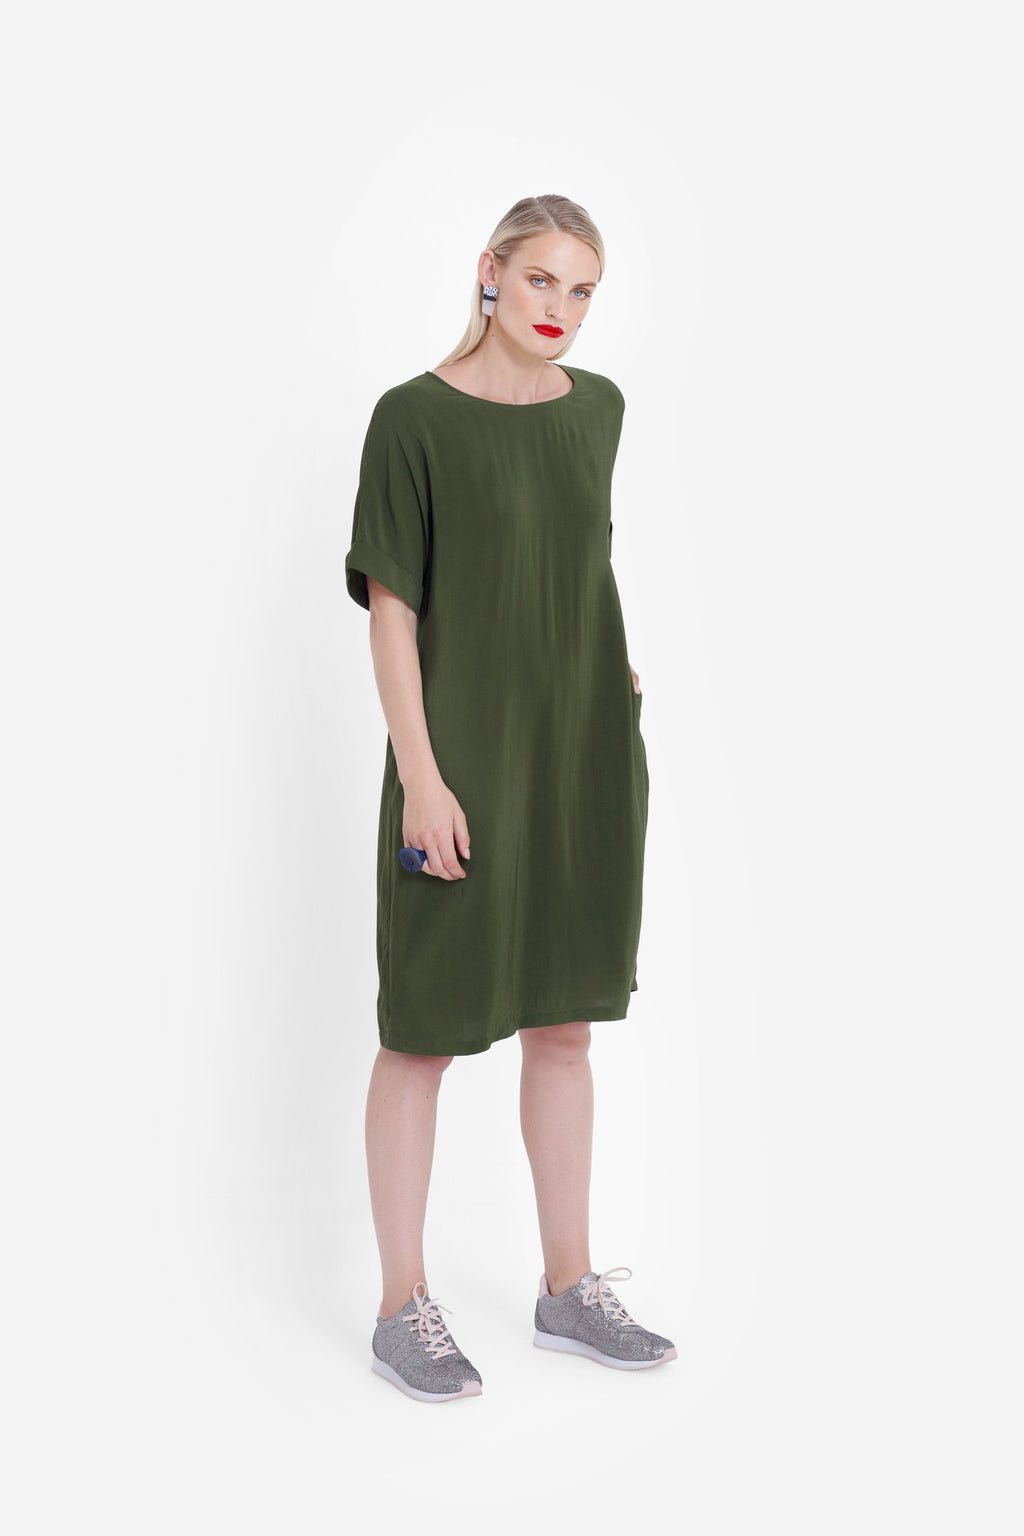 ELK The Label - Arden Dress online at PAYA boutique